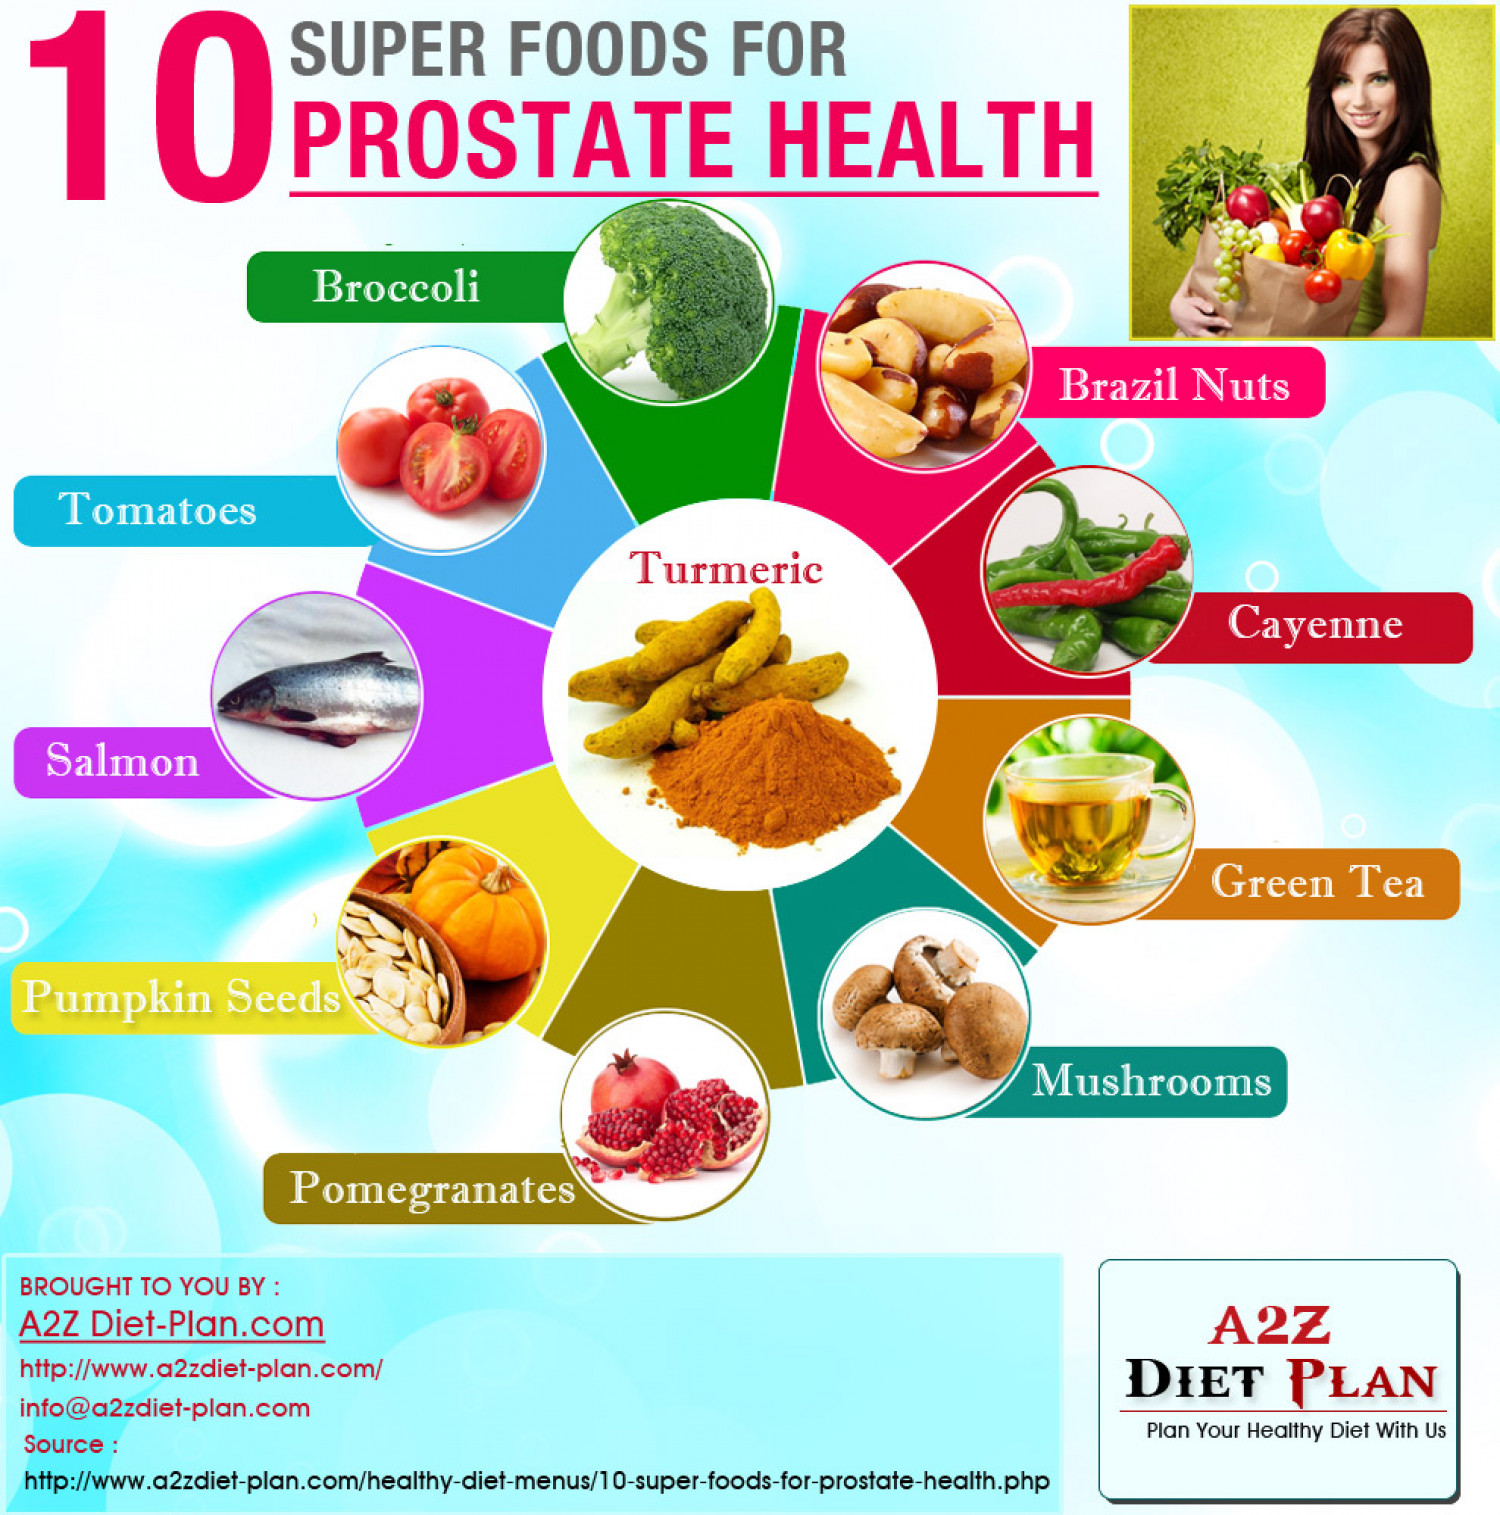 Foods For Your Prostate Health